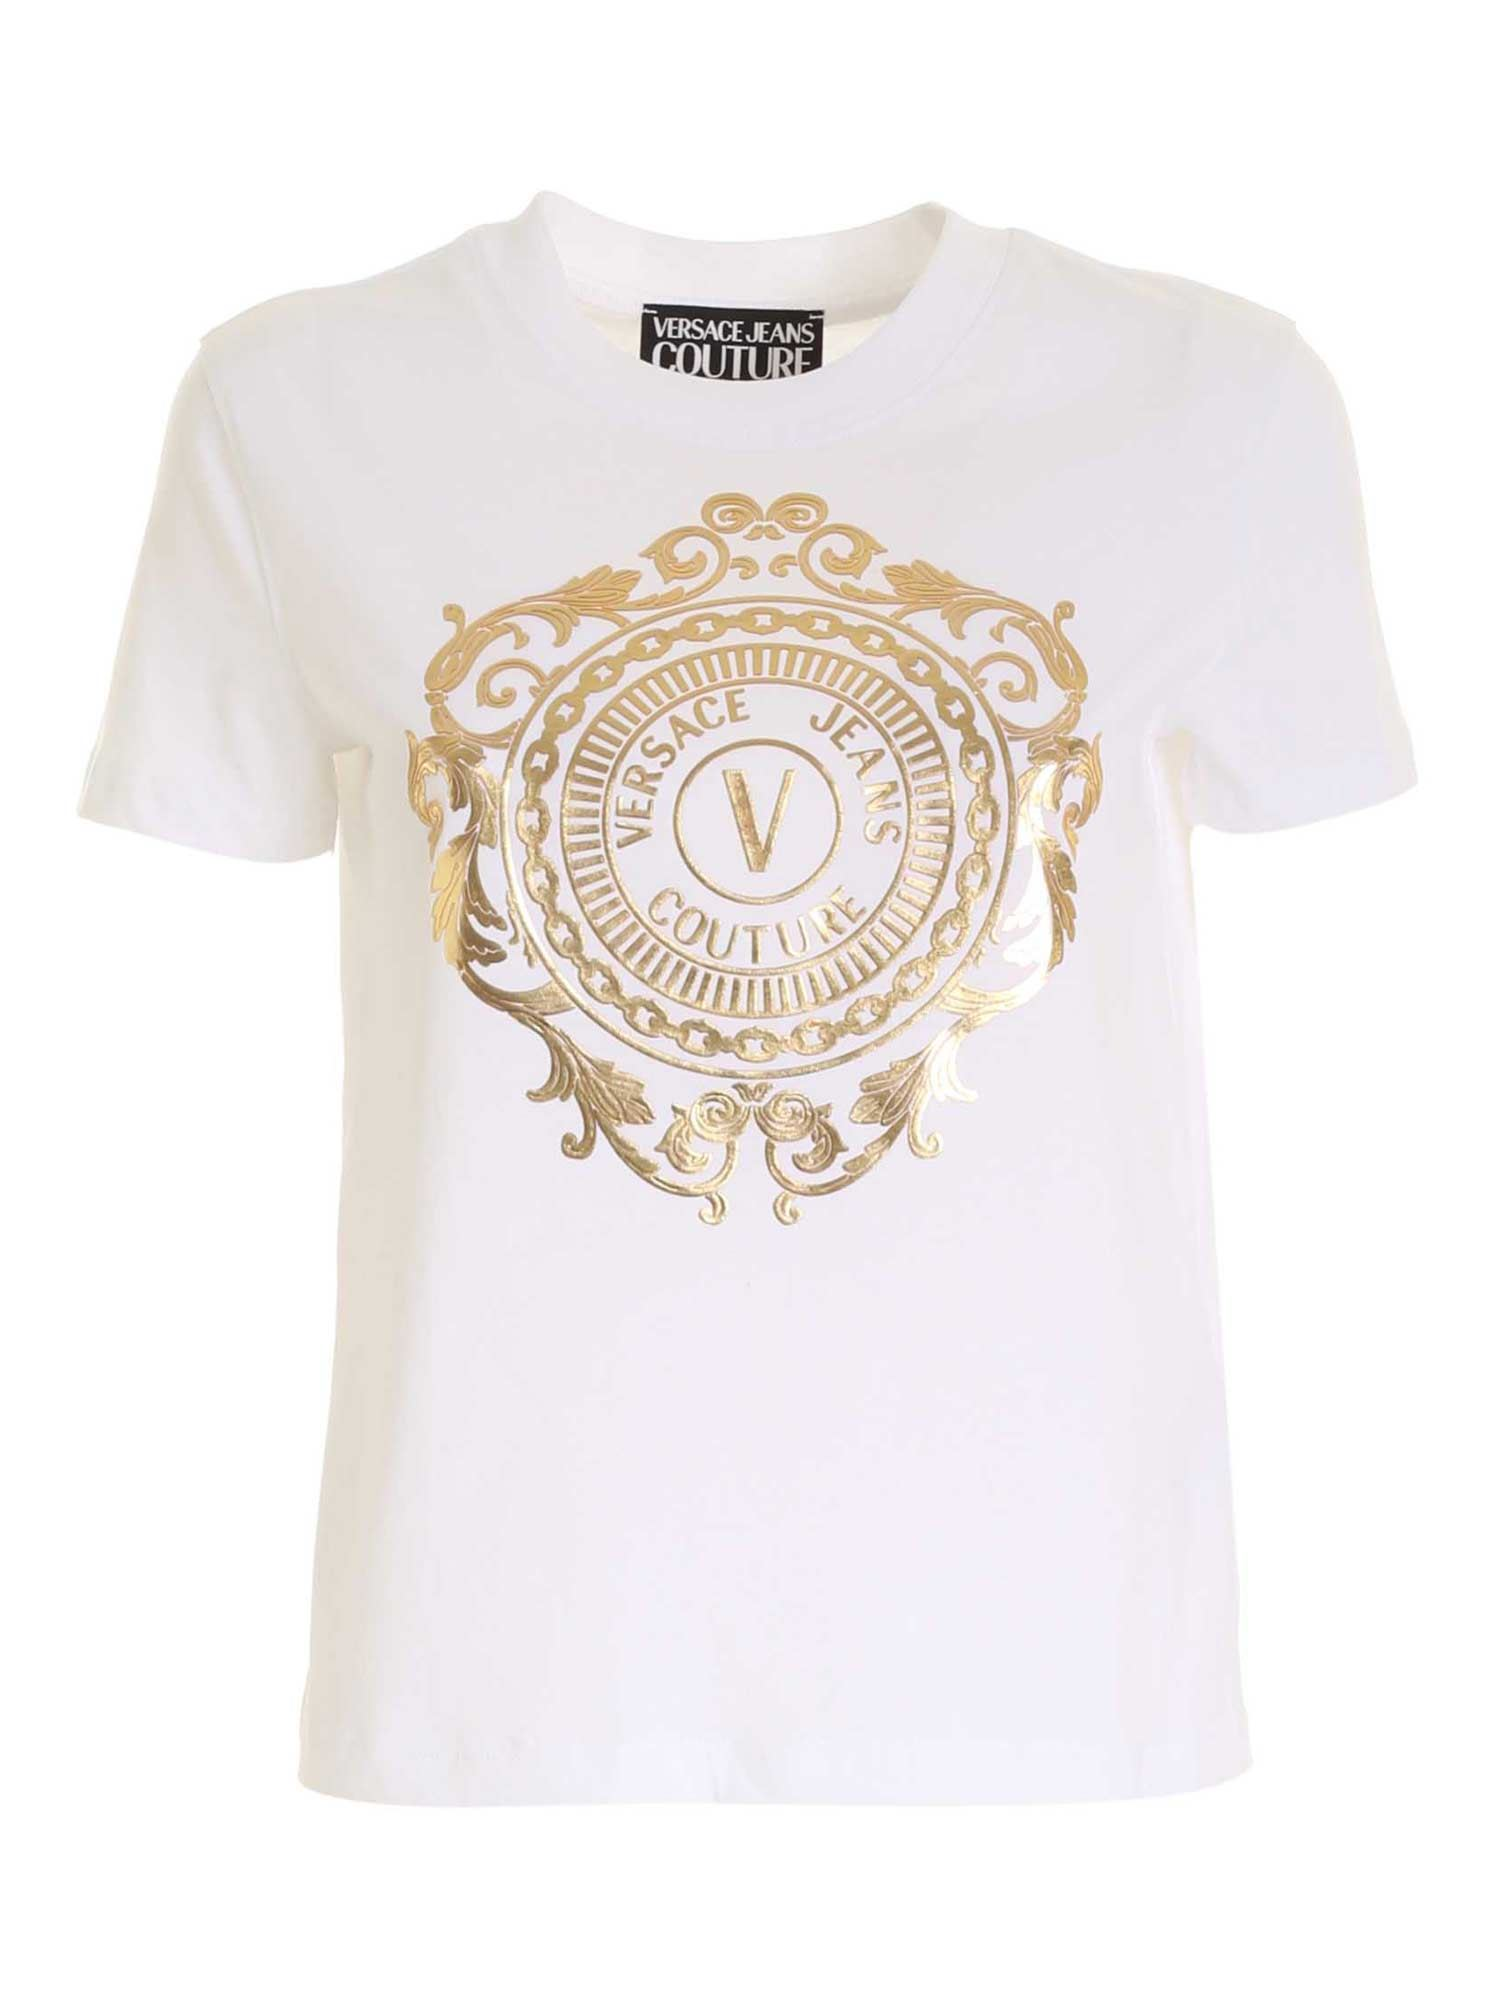 Versace Jeans Couture LOGO T-SHIRT IN WHITE